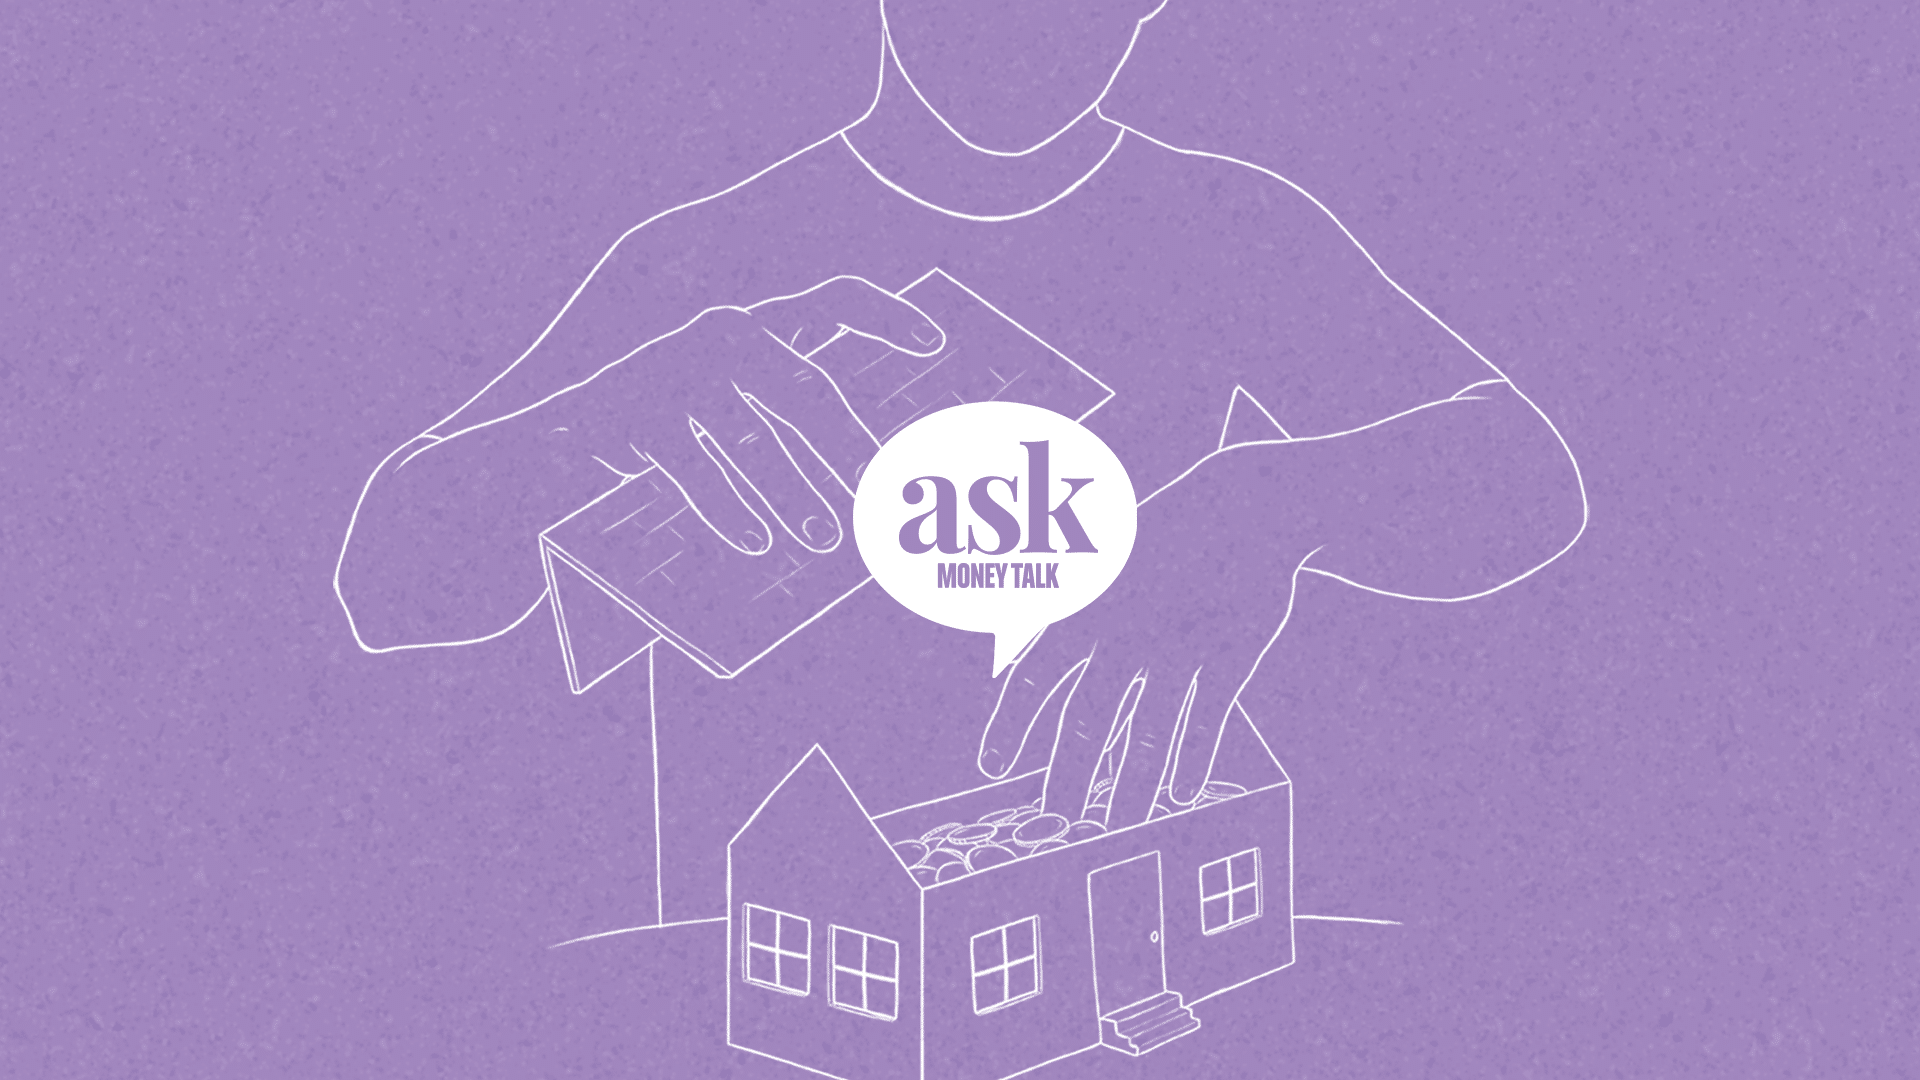 askmoneytalk logo with backdrop depicting a person withdrawing coins from a miniature house figure